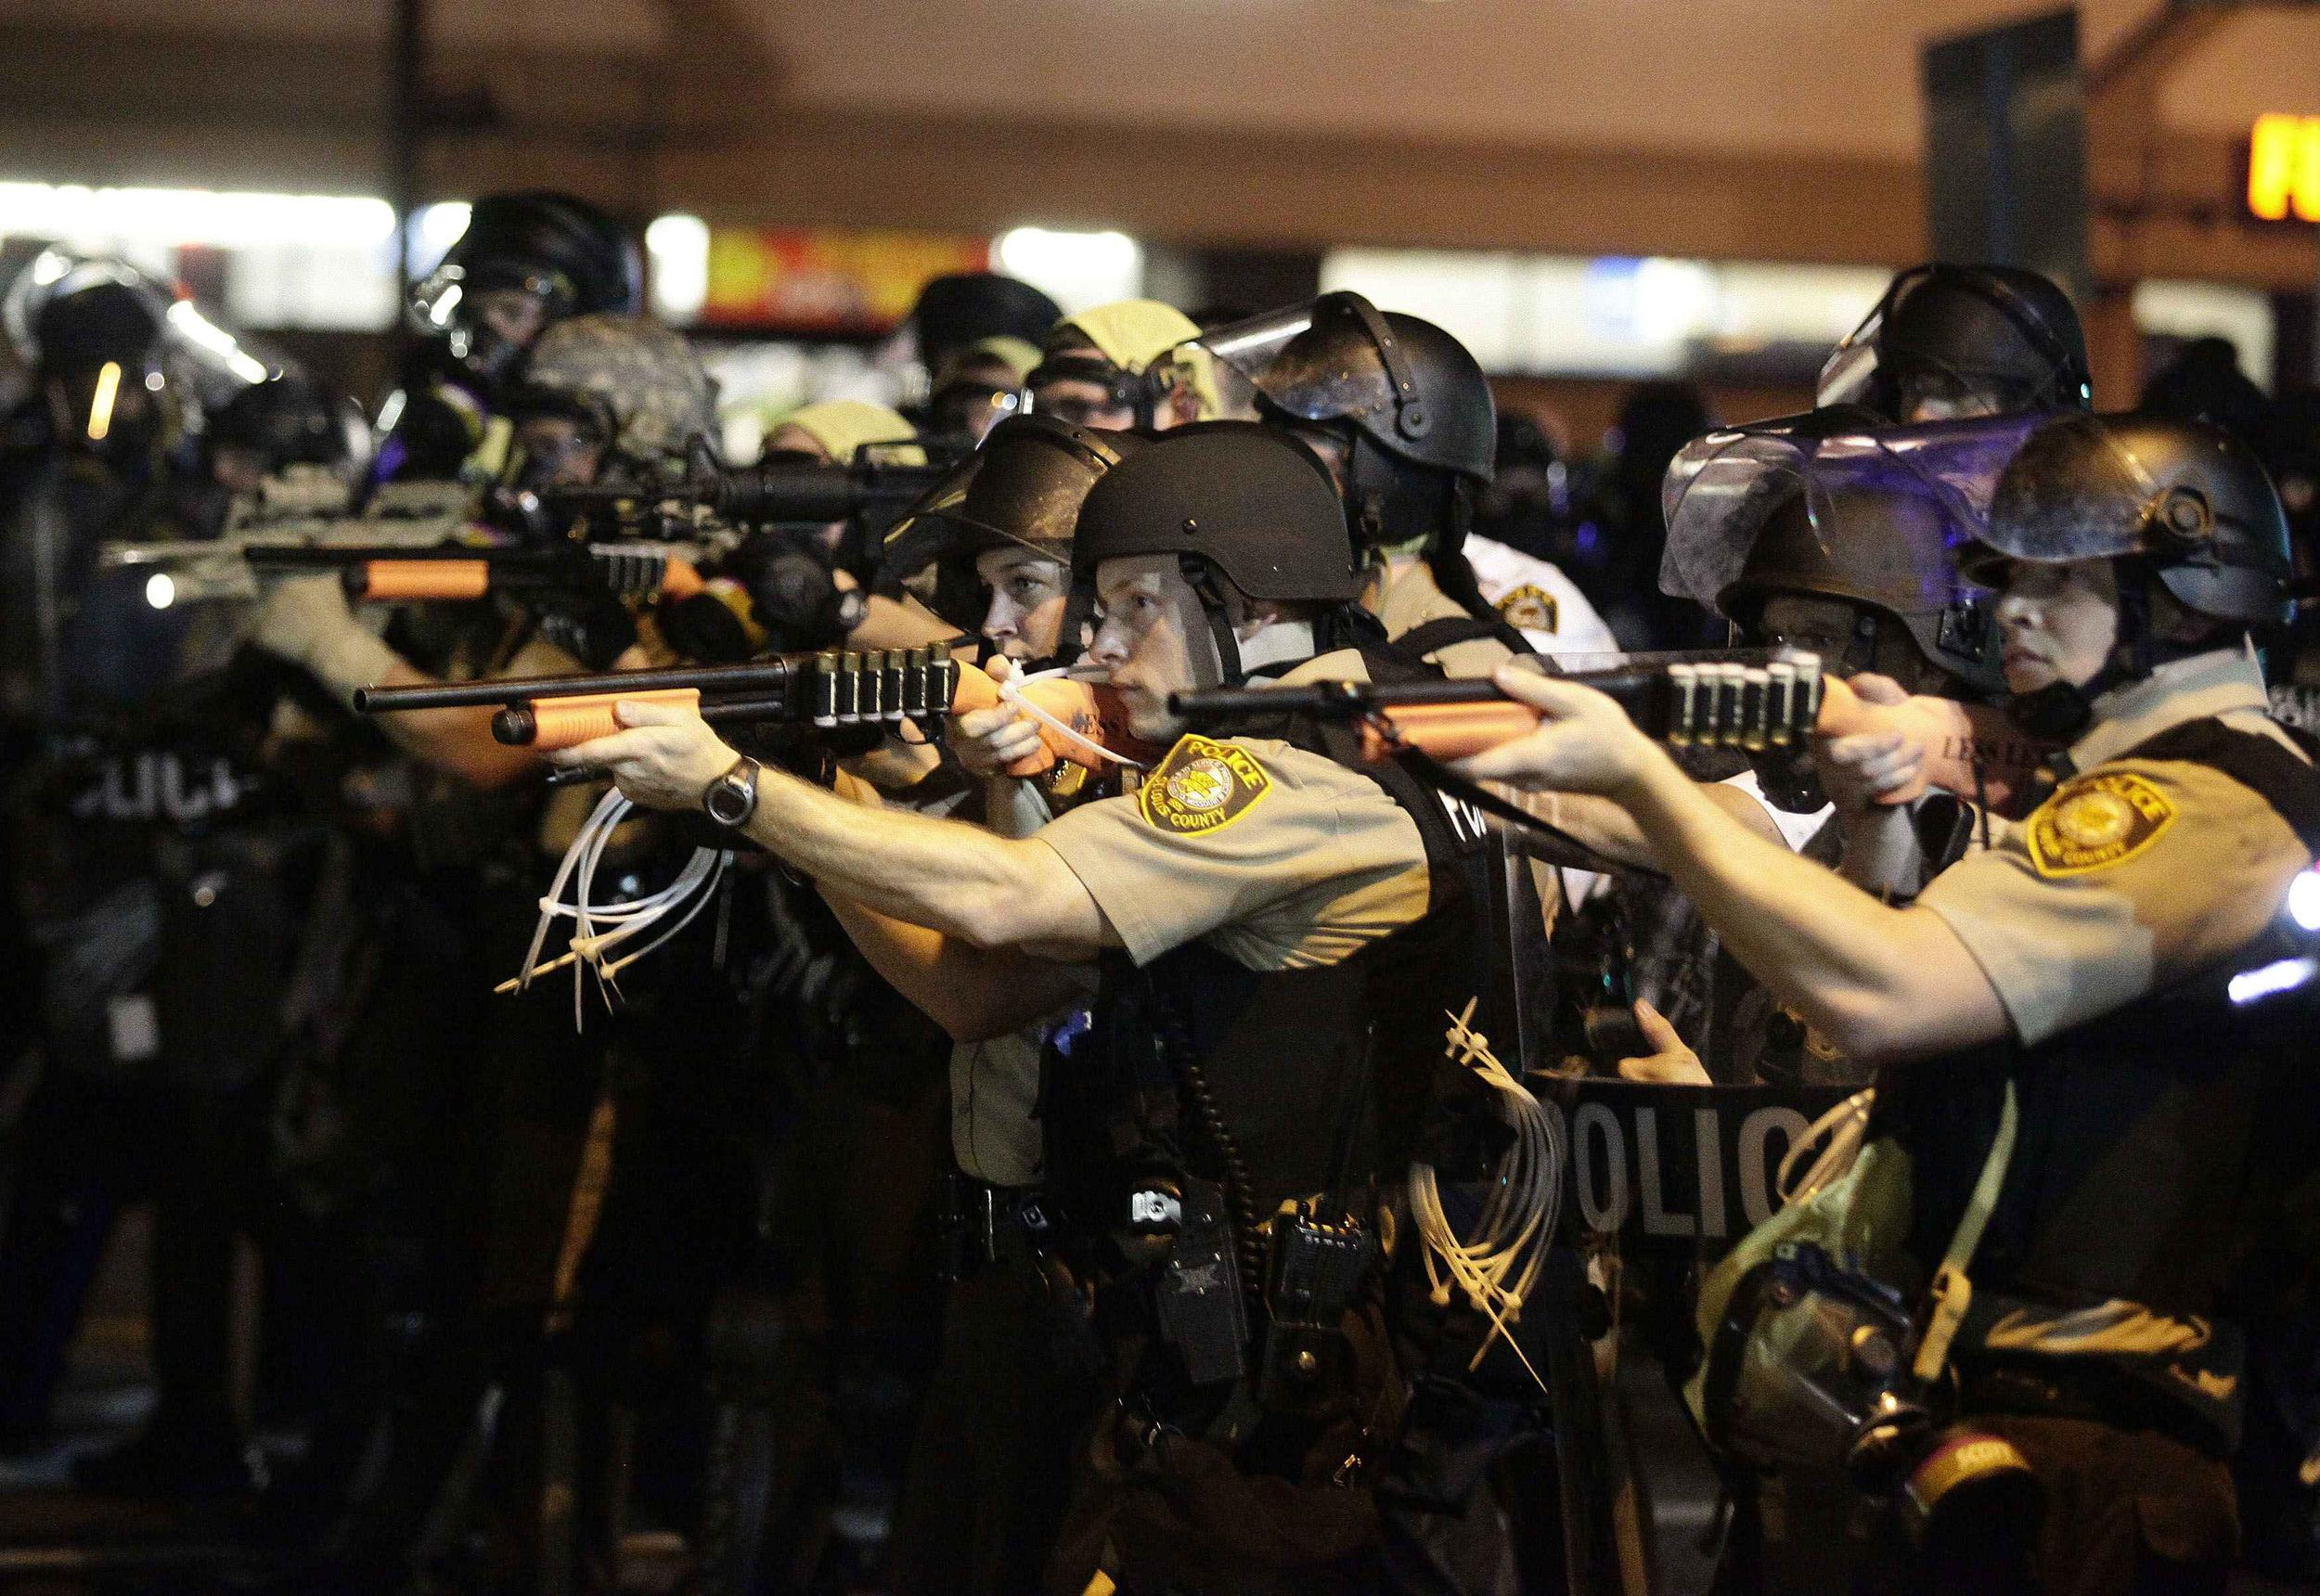 Image: Police officers point their weapons at demonstrators protesting against the shooting death of Michael Brown in Ferguson, Missouri